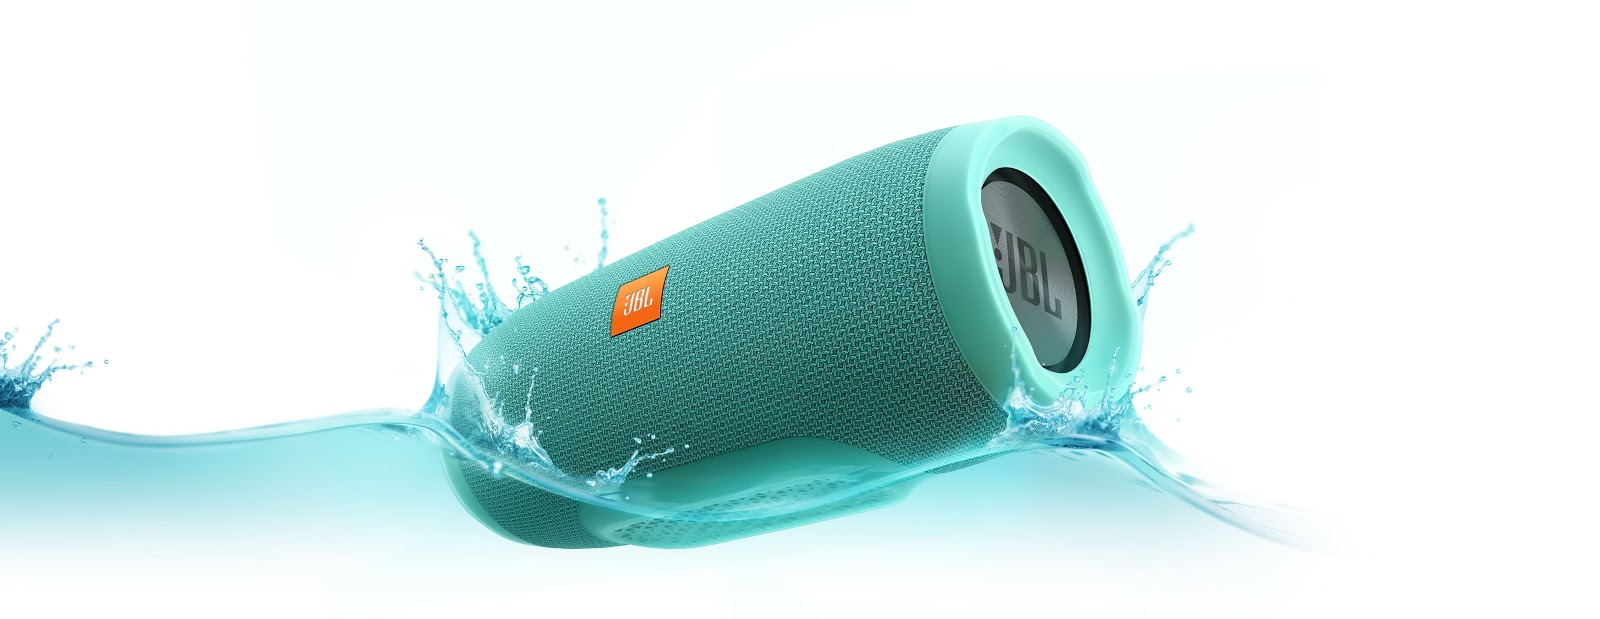 JBL Charge 3 Full-Featured Waterproof Portable Speaker